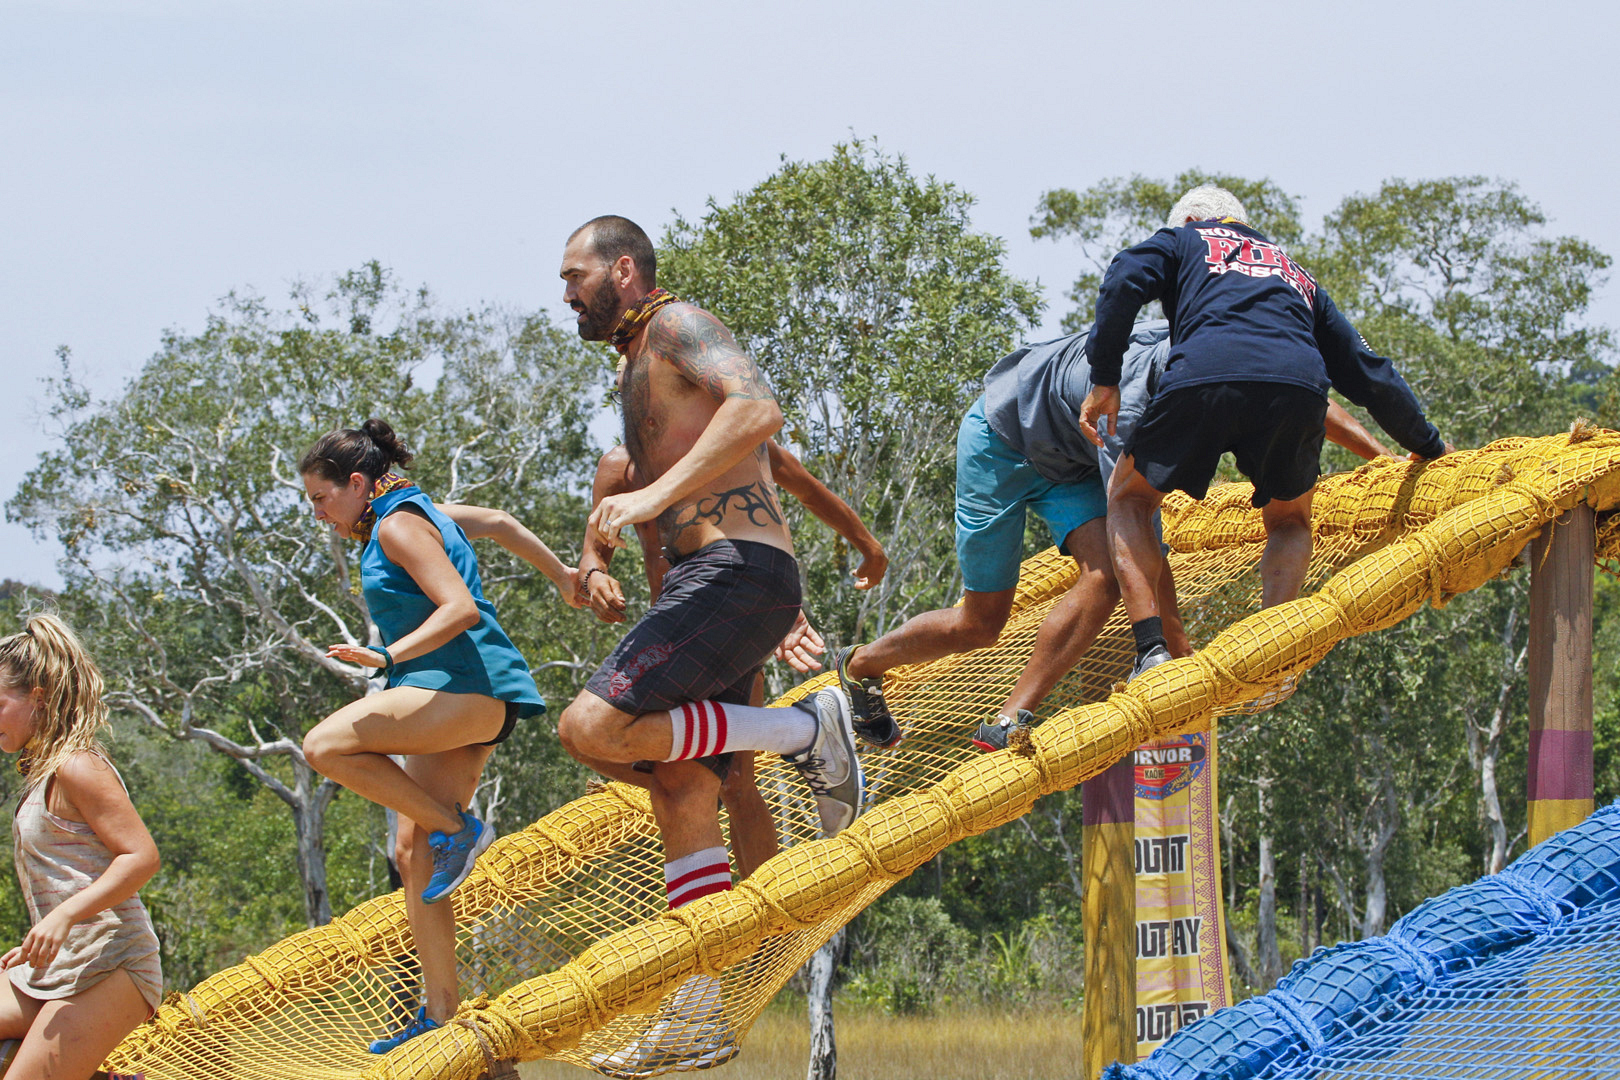 Competing for Immunity gets serious on Survivor.